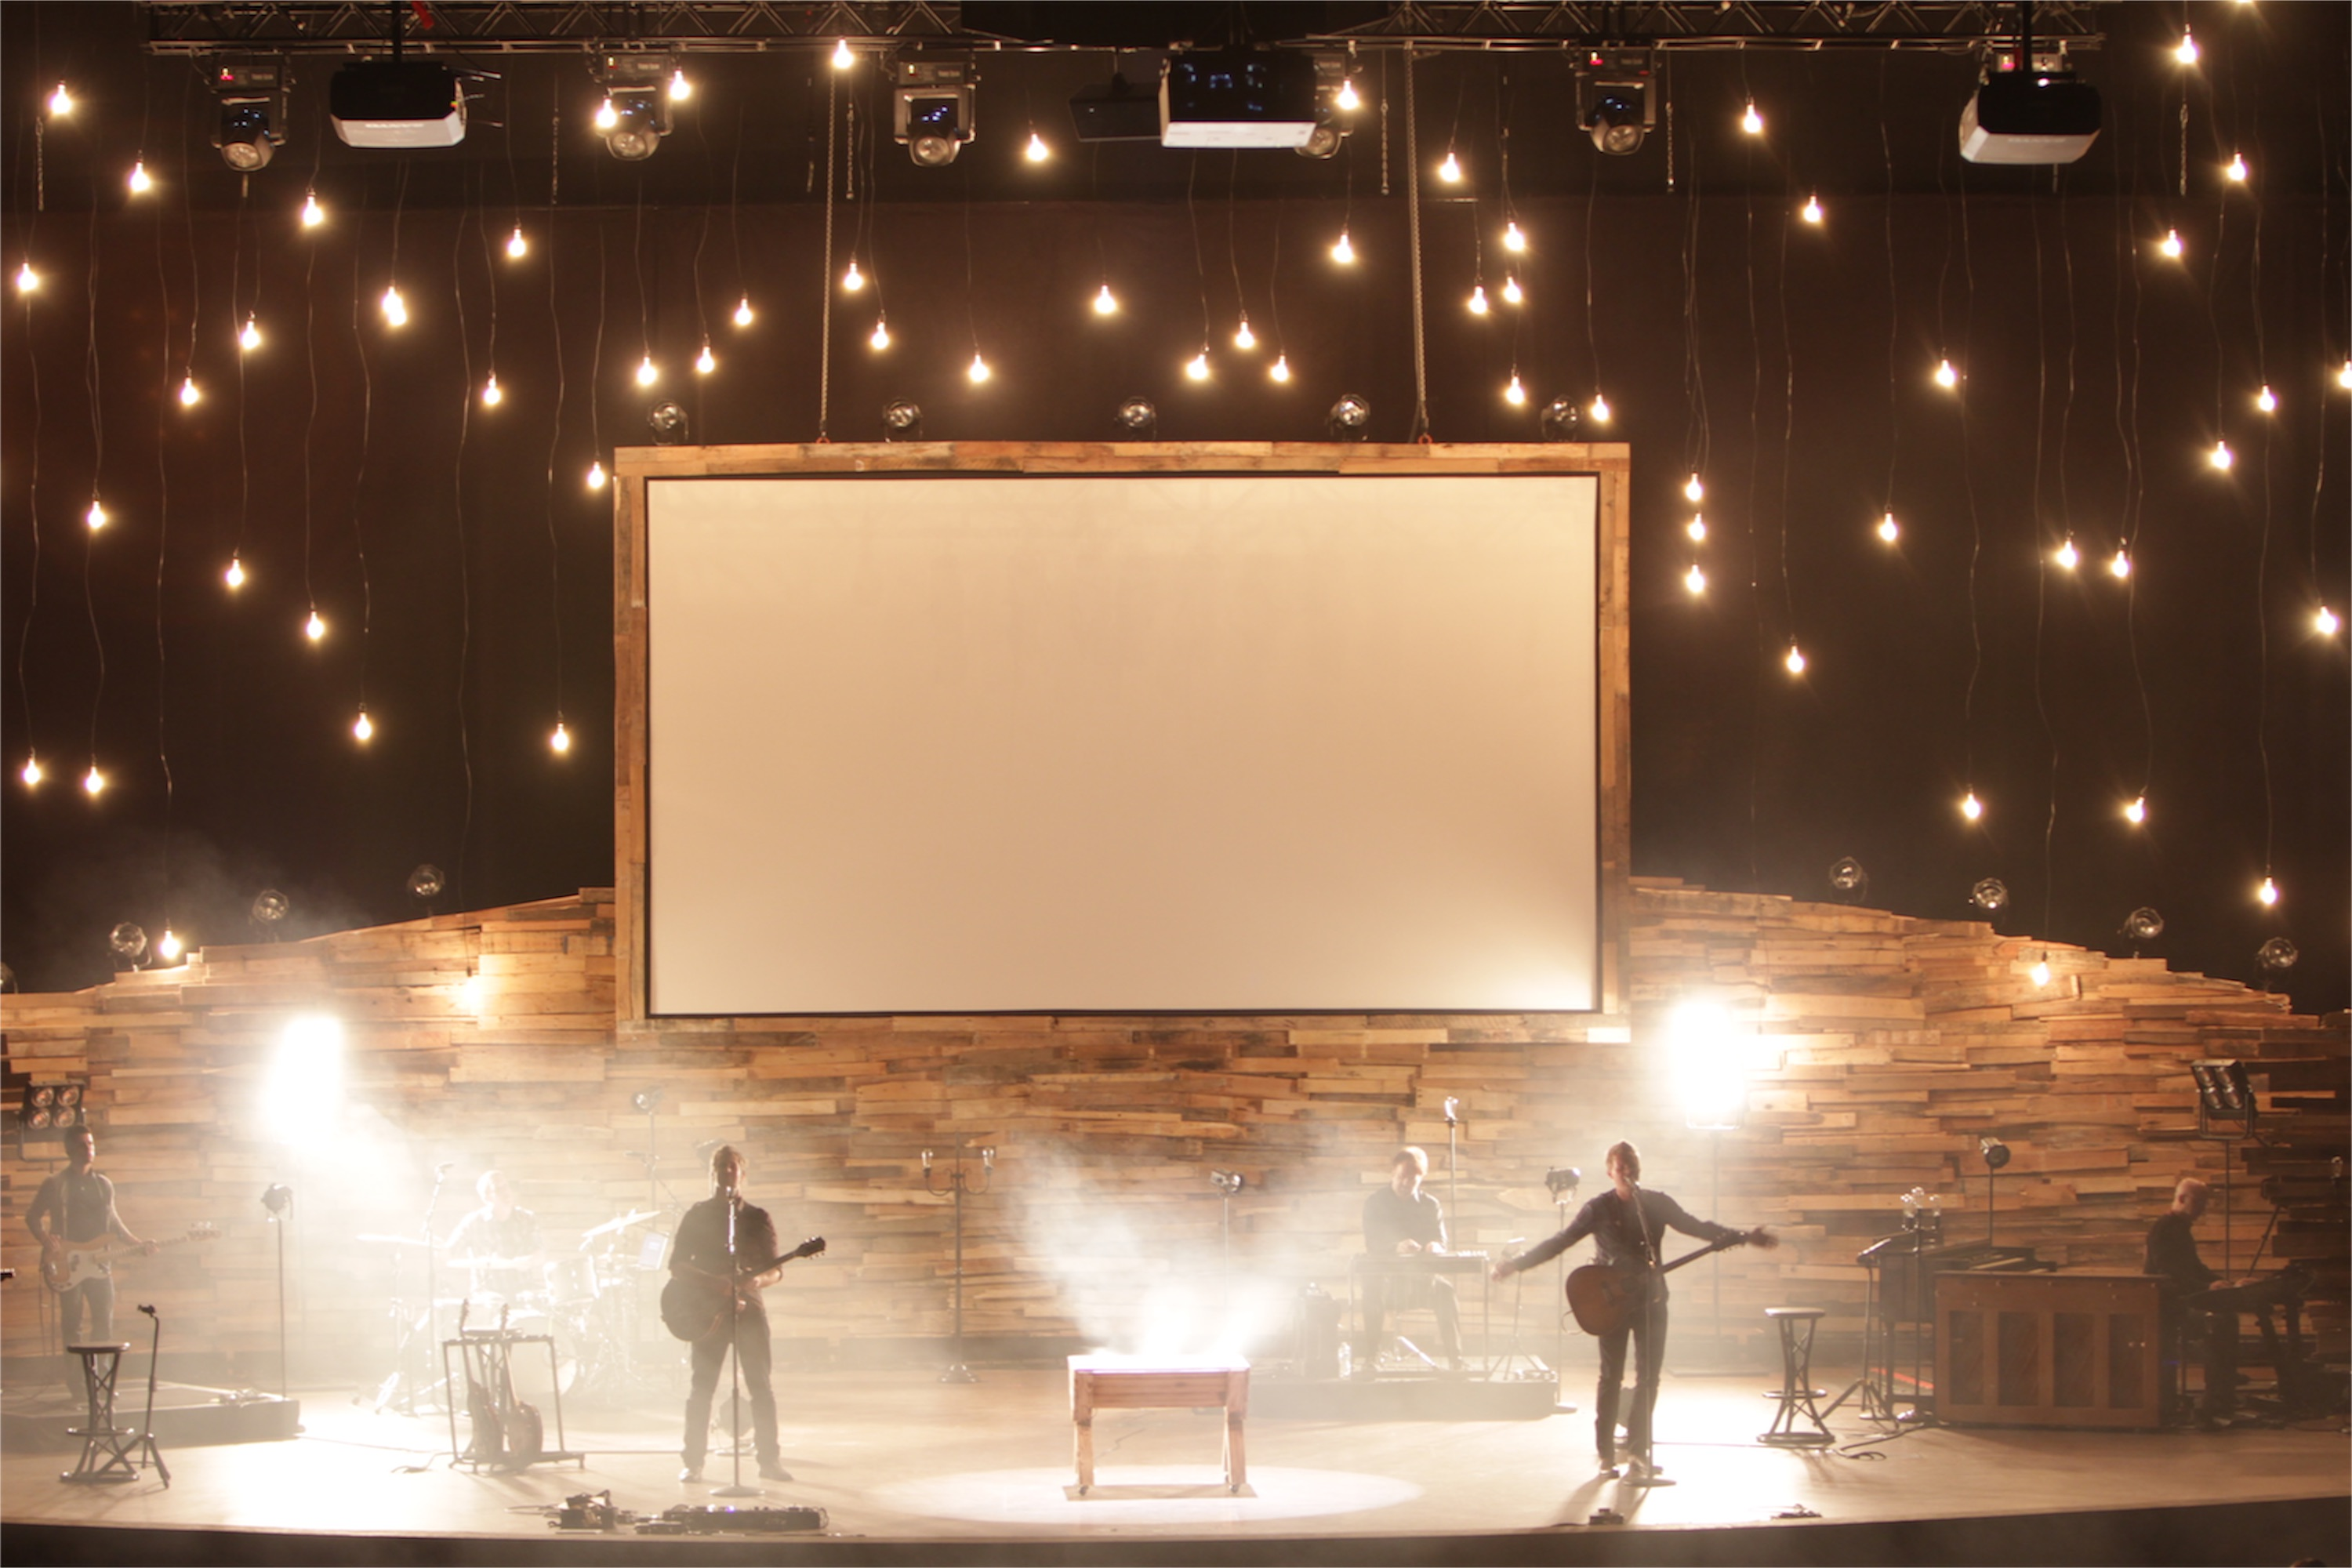 Mountains And Stars Church Stage Design Ideas Scenic Sets And Stage Design Ideas From Churches Around The Globe